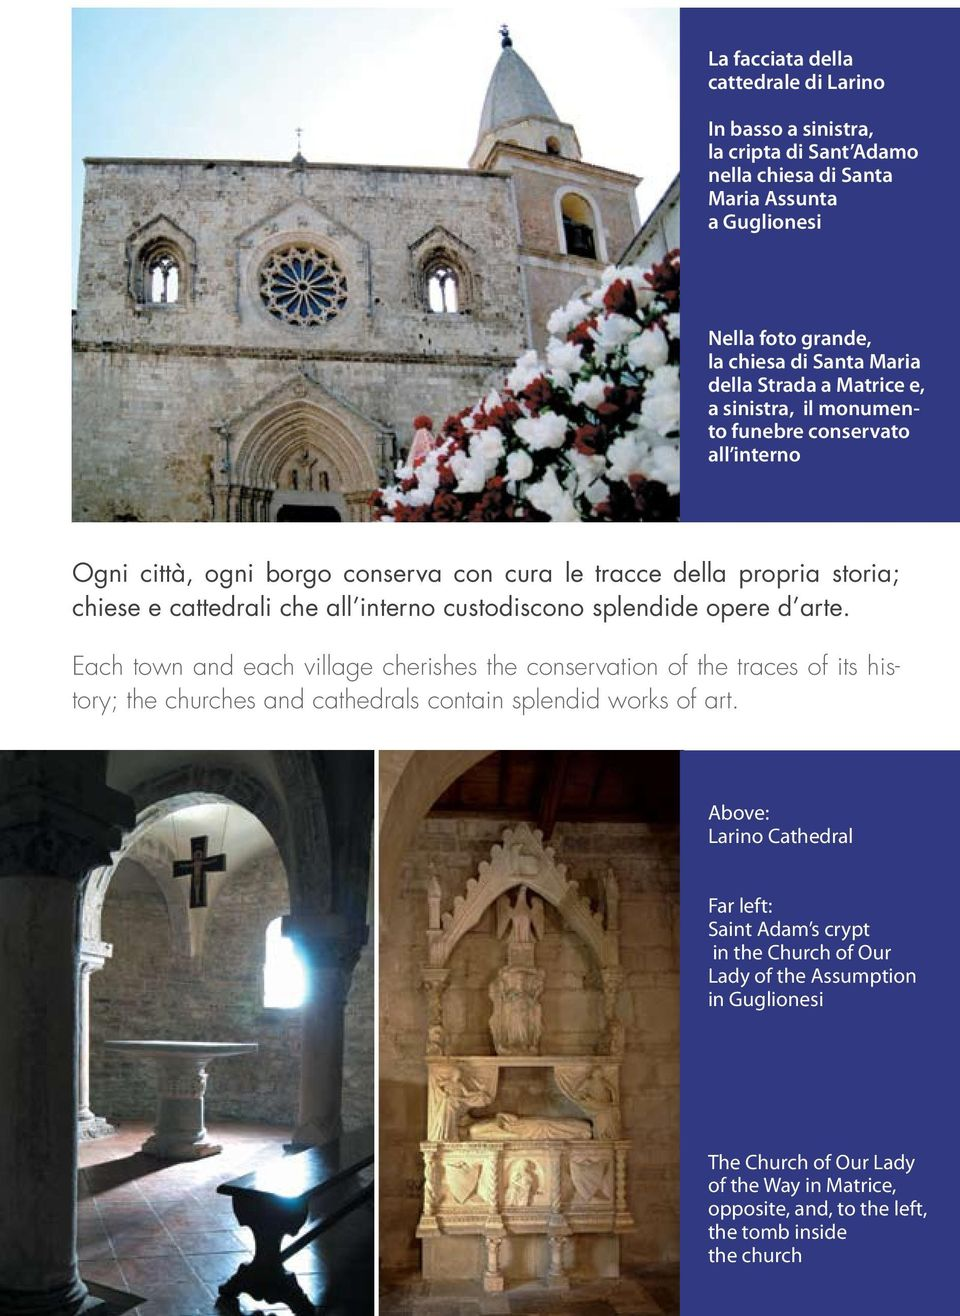 custodiscono splendide opere d arte. Each town and each village cherishes the conservation of the traces of its history; the churches and cathedrals contain splendid works of art.